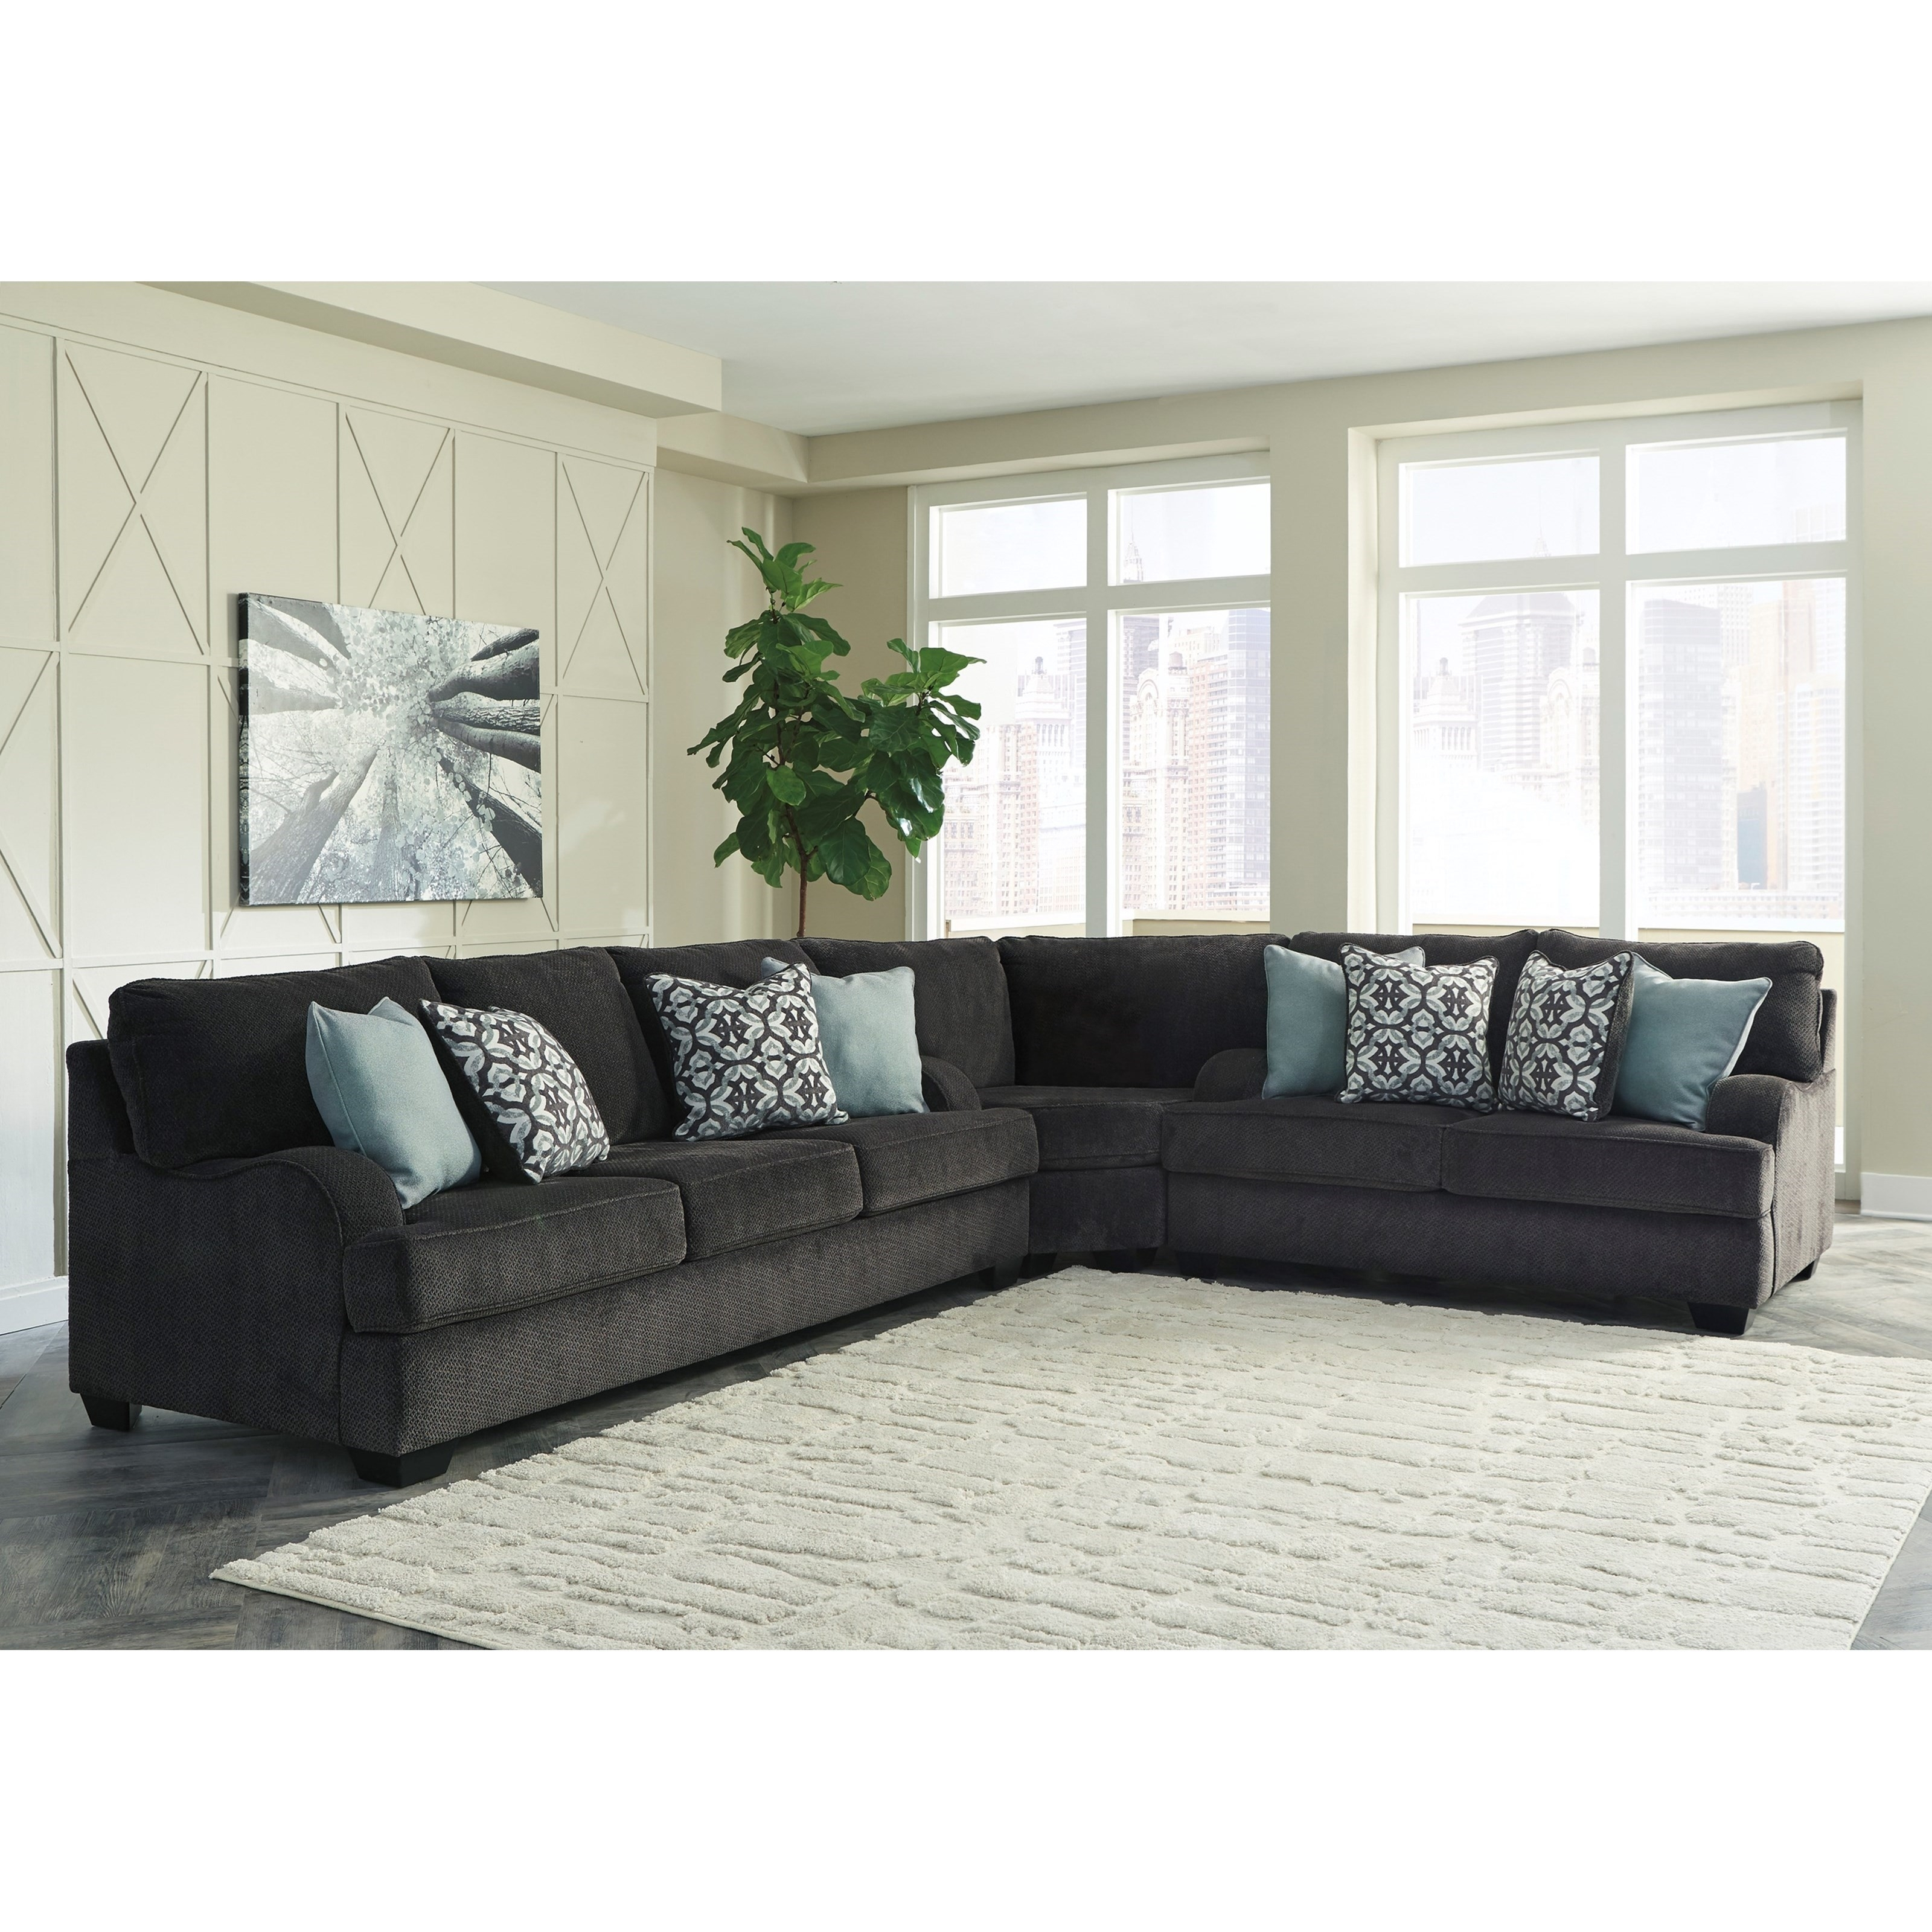 Luxury Splitting Up A Sectional Sofa Hiding Unfinished Side With Jackson Ms Sectional Sofas (View 7 of 10)